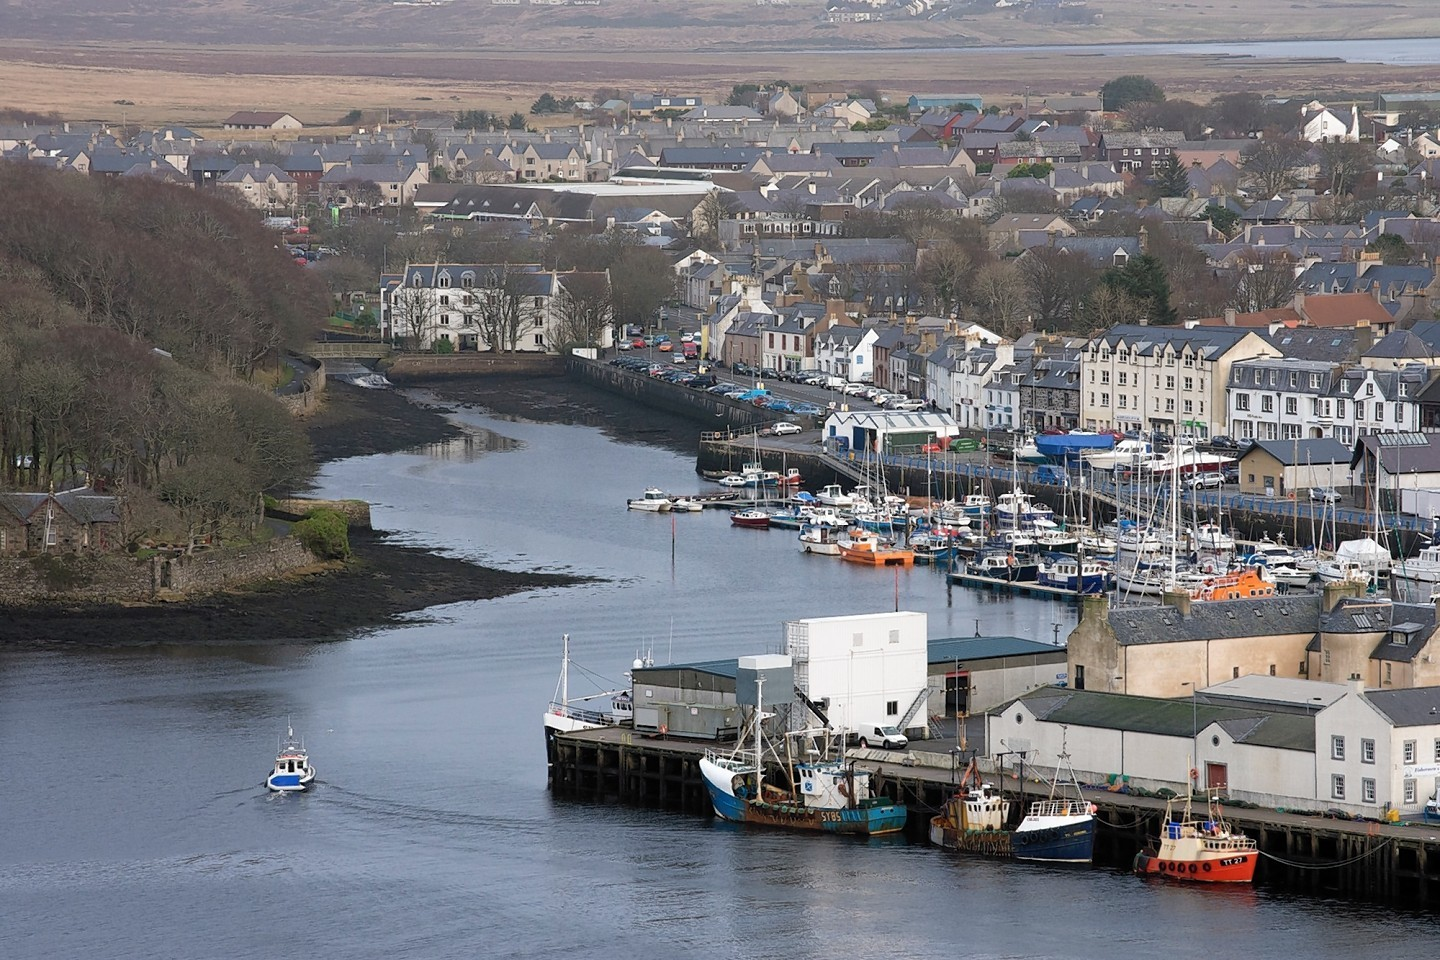 Stornoway on the Isle of Lewis